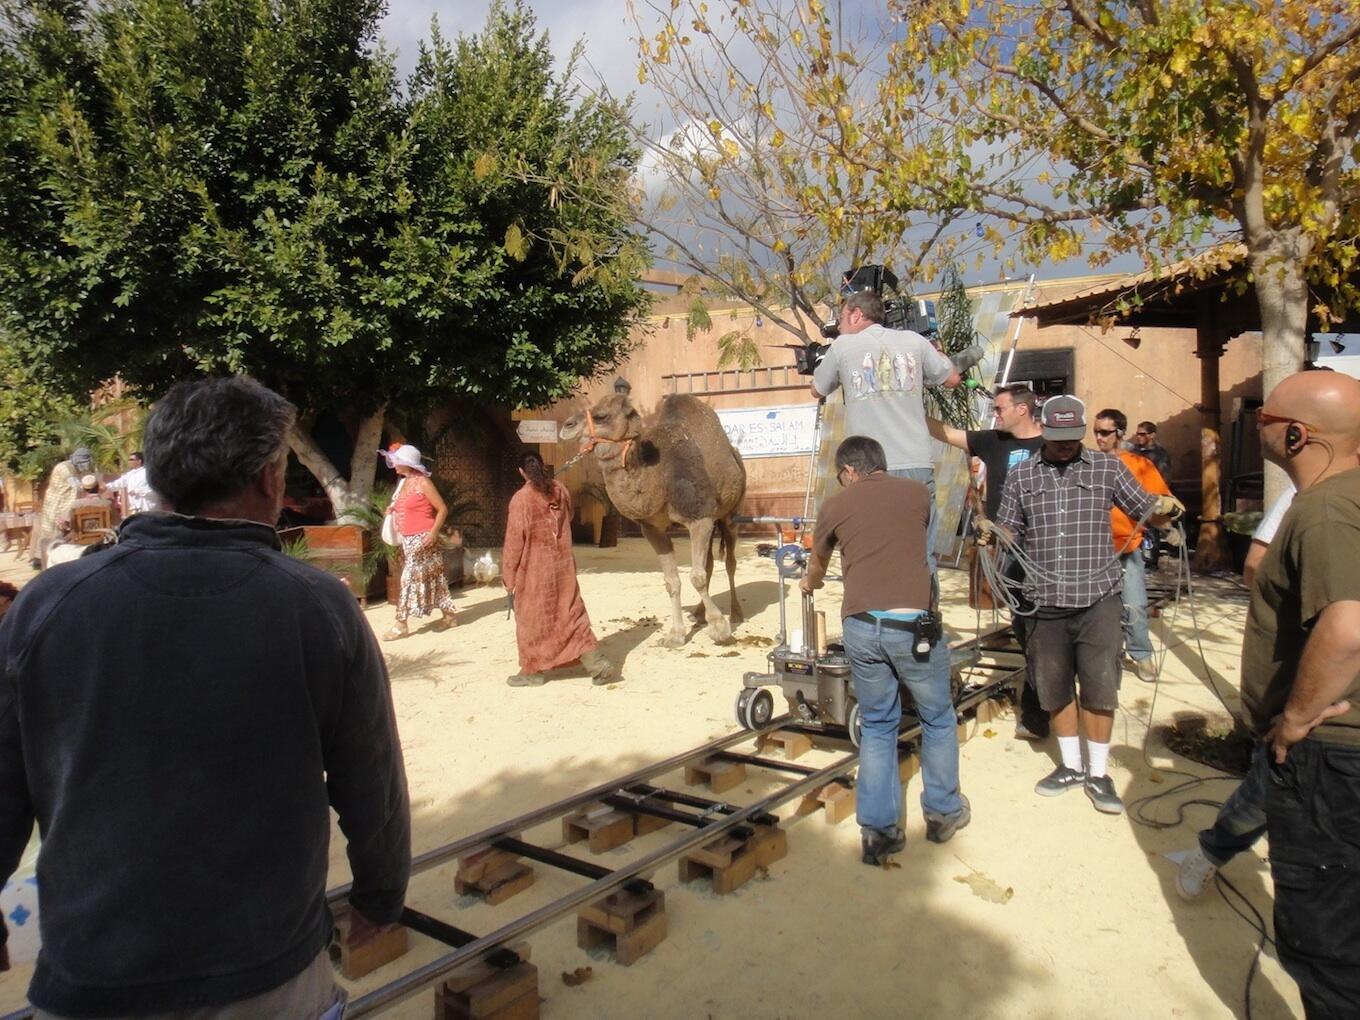 #BenidormPicOfTheDay One of our more surreal filming days. Making Benidorm zoo Morocco! Complete with camel! http://t.co/6ktTlOYpmo